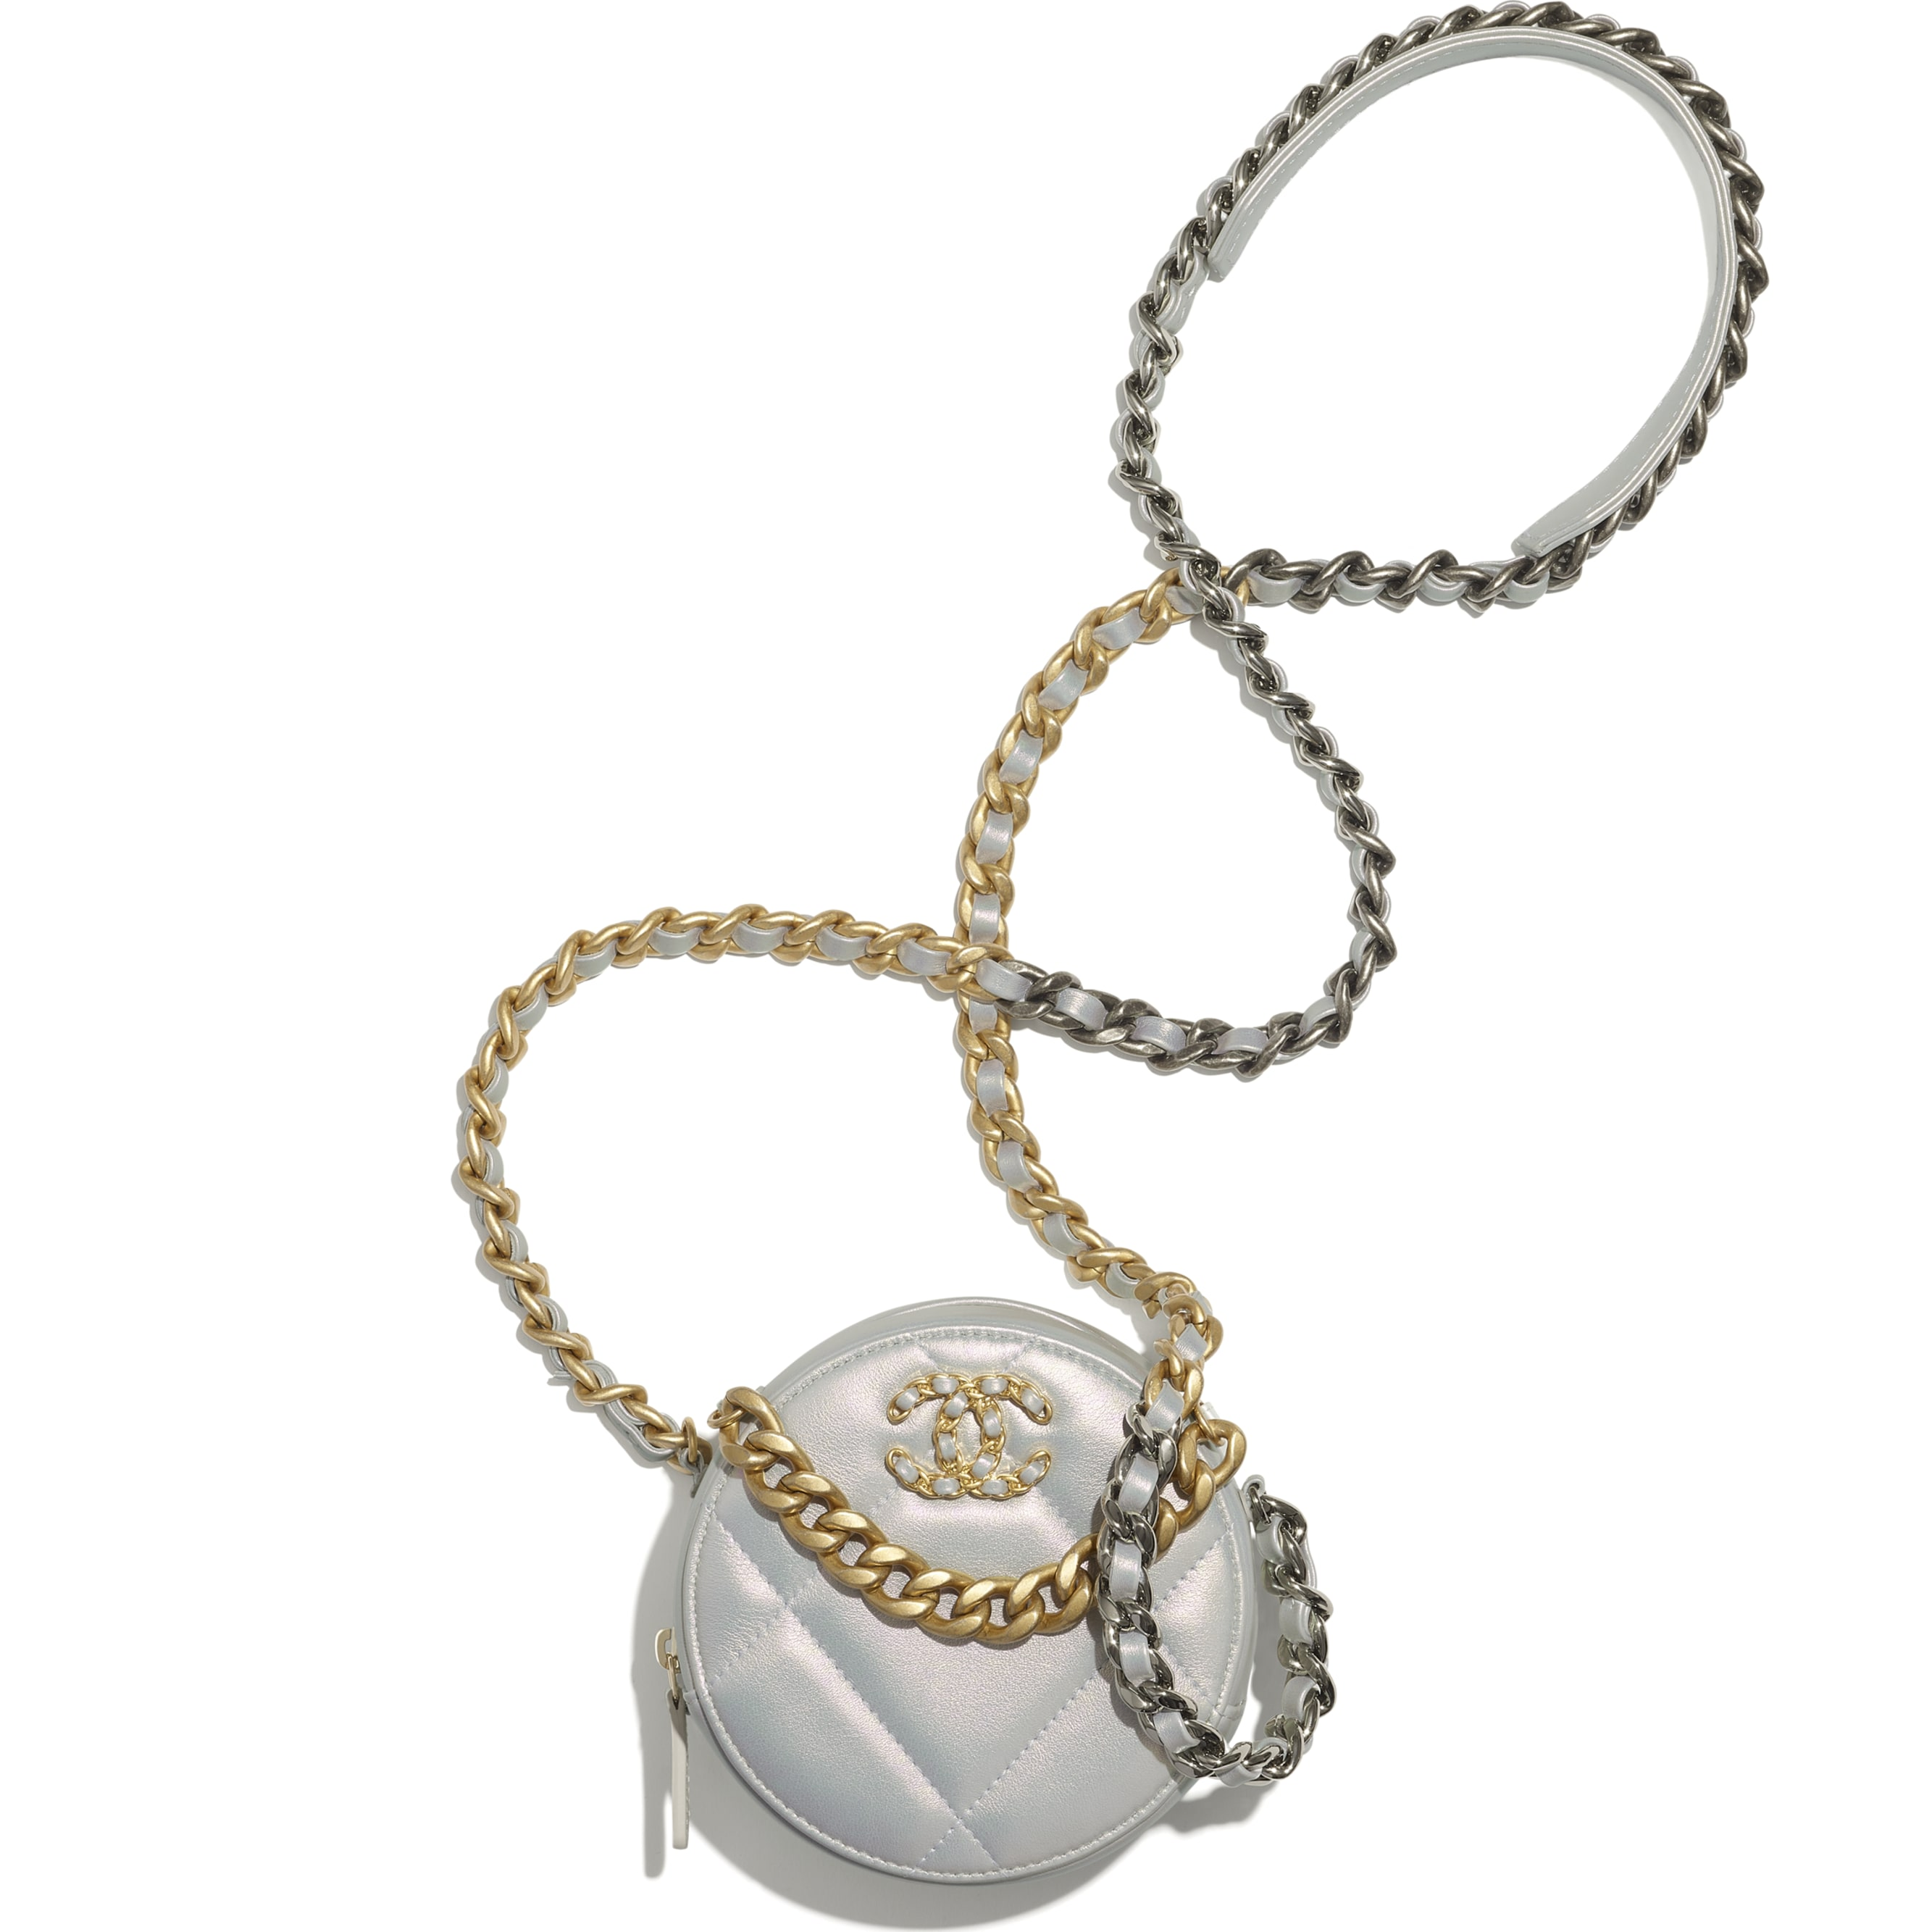 CHANEL 19 Clutch with Chain - White - Iridescent Calfskin, Gold-Tone, Silver-Tone & Ruthenium-Finish Metal - CHANEL - Alternative view - see standard sized version